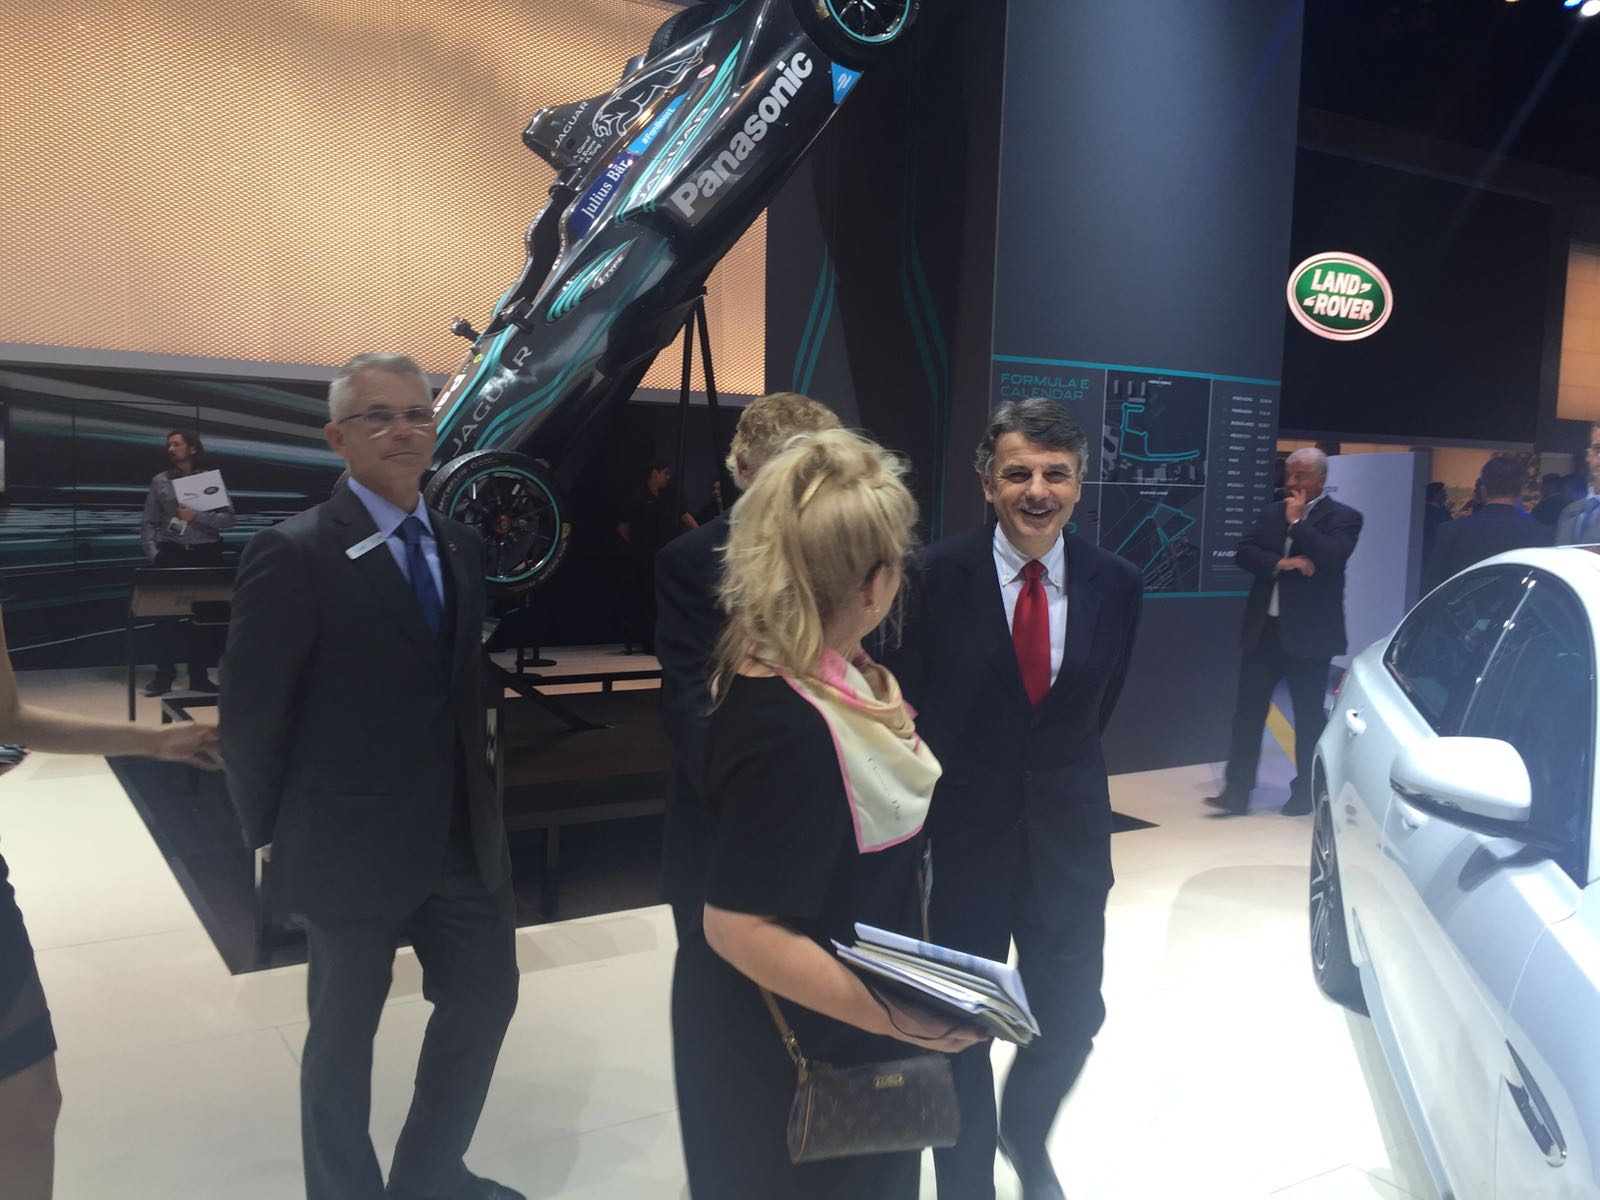 Jaguar Land Rover CEO Ralf Speth walks in front of Jaguar Racing's formula-E vehicle with LIASE Group Non-Executive Board Member Vic H. Doolan (hidden).